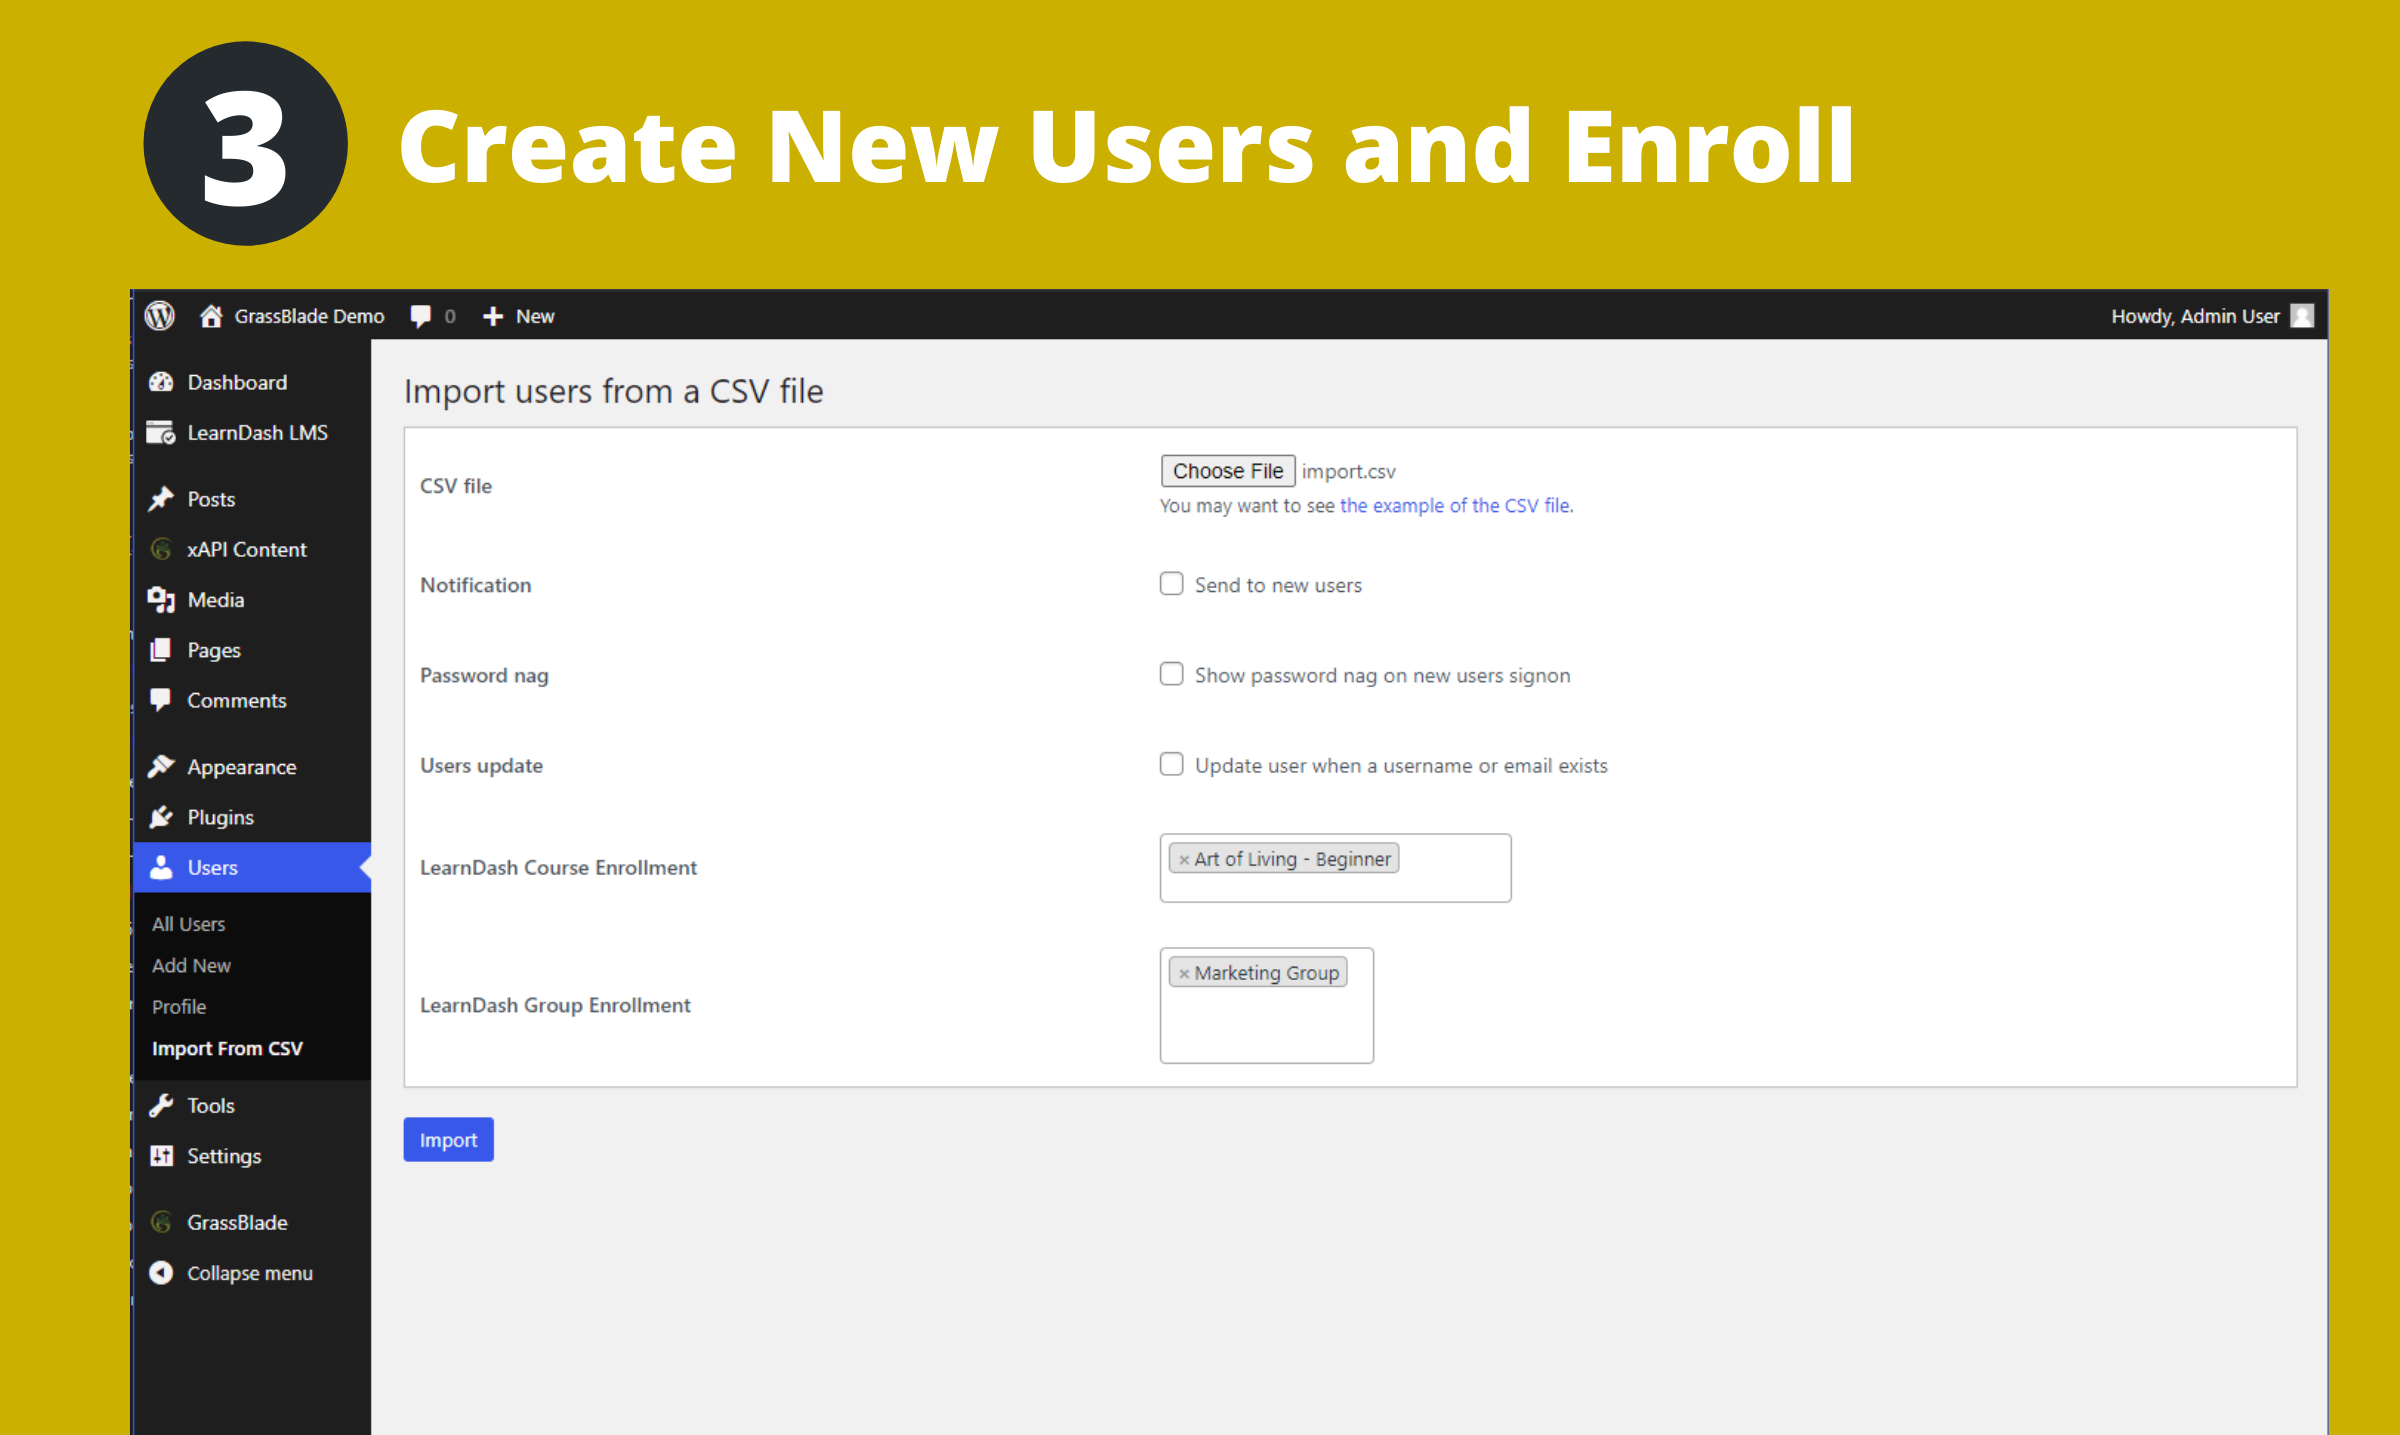 Create New users and enroll